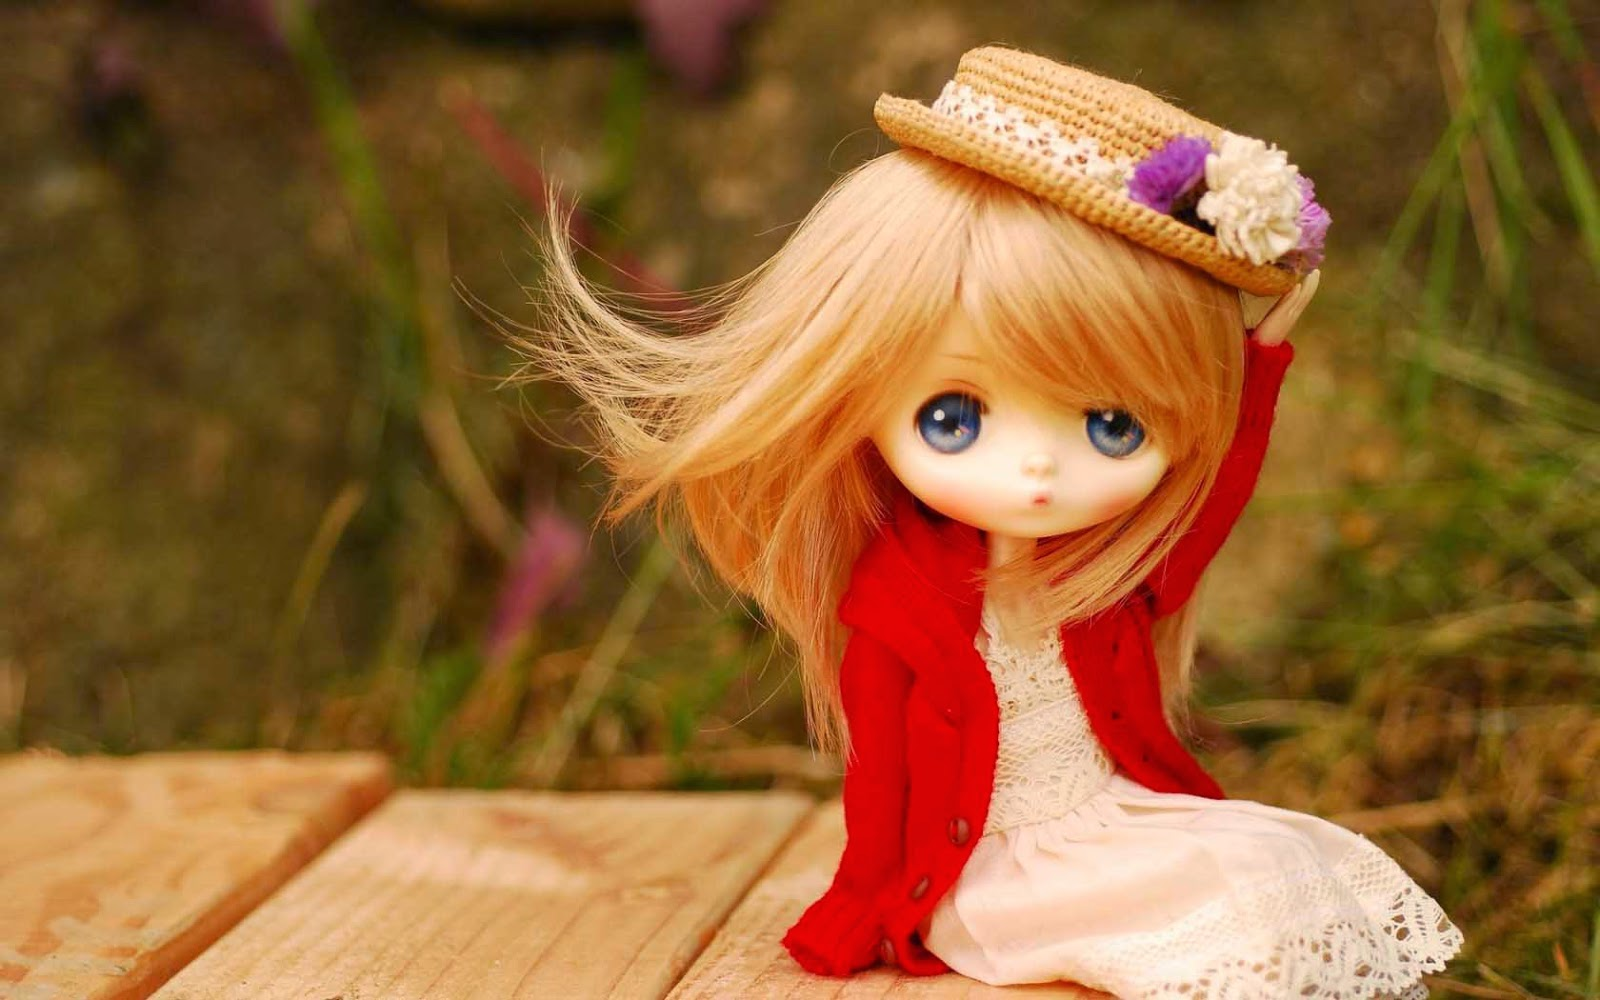 wallpaper: barbie doll latest hd wallpapers free download